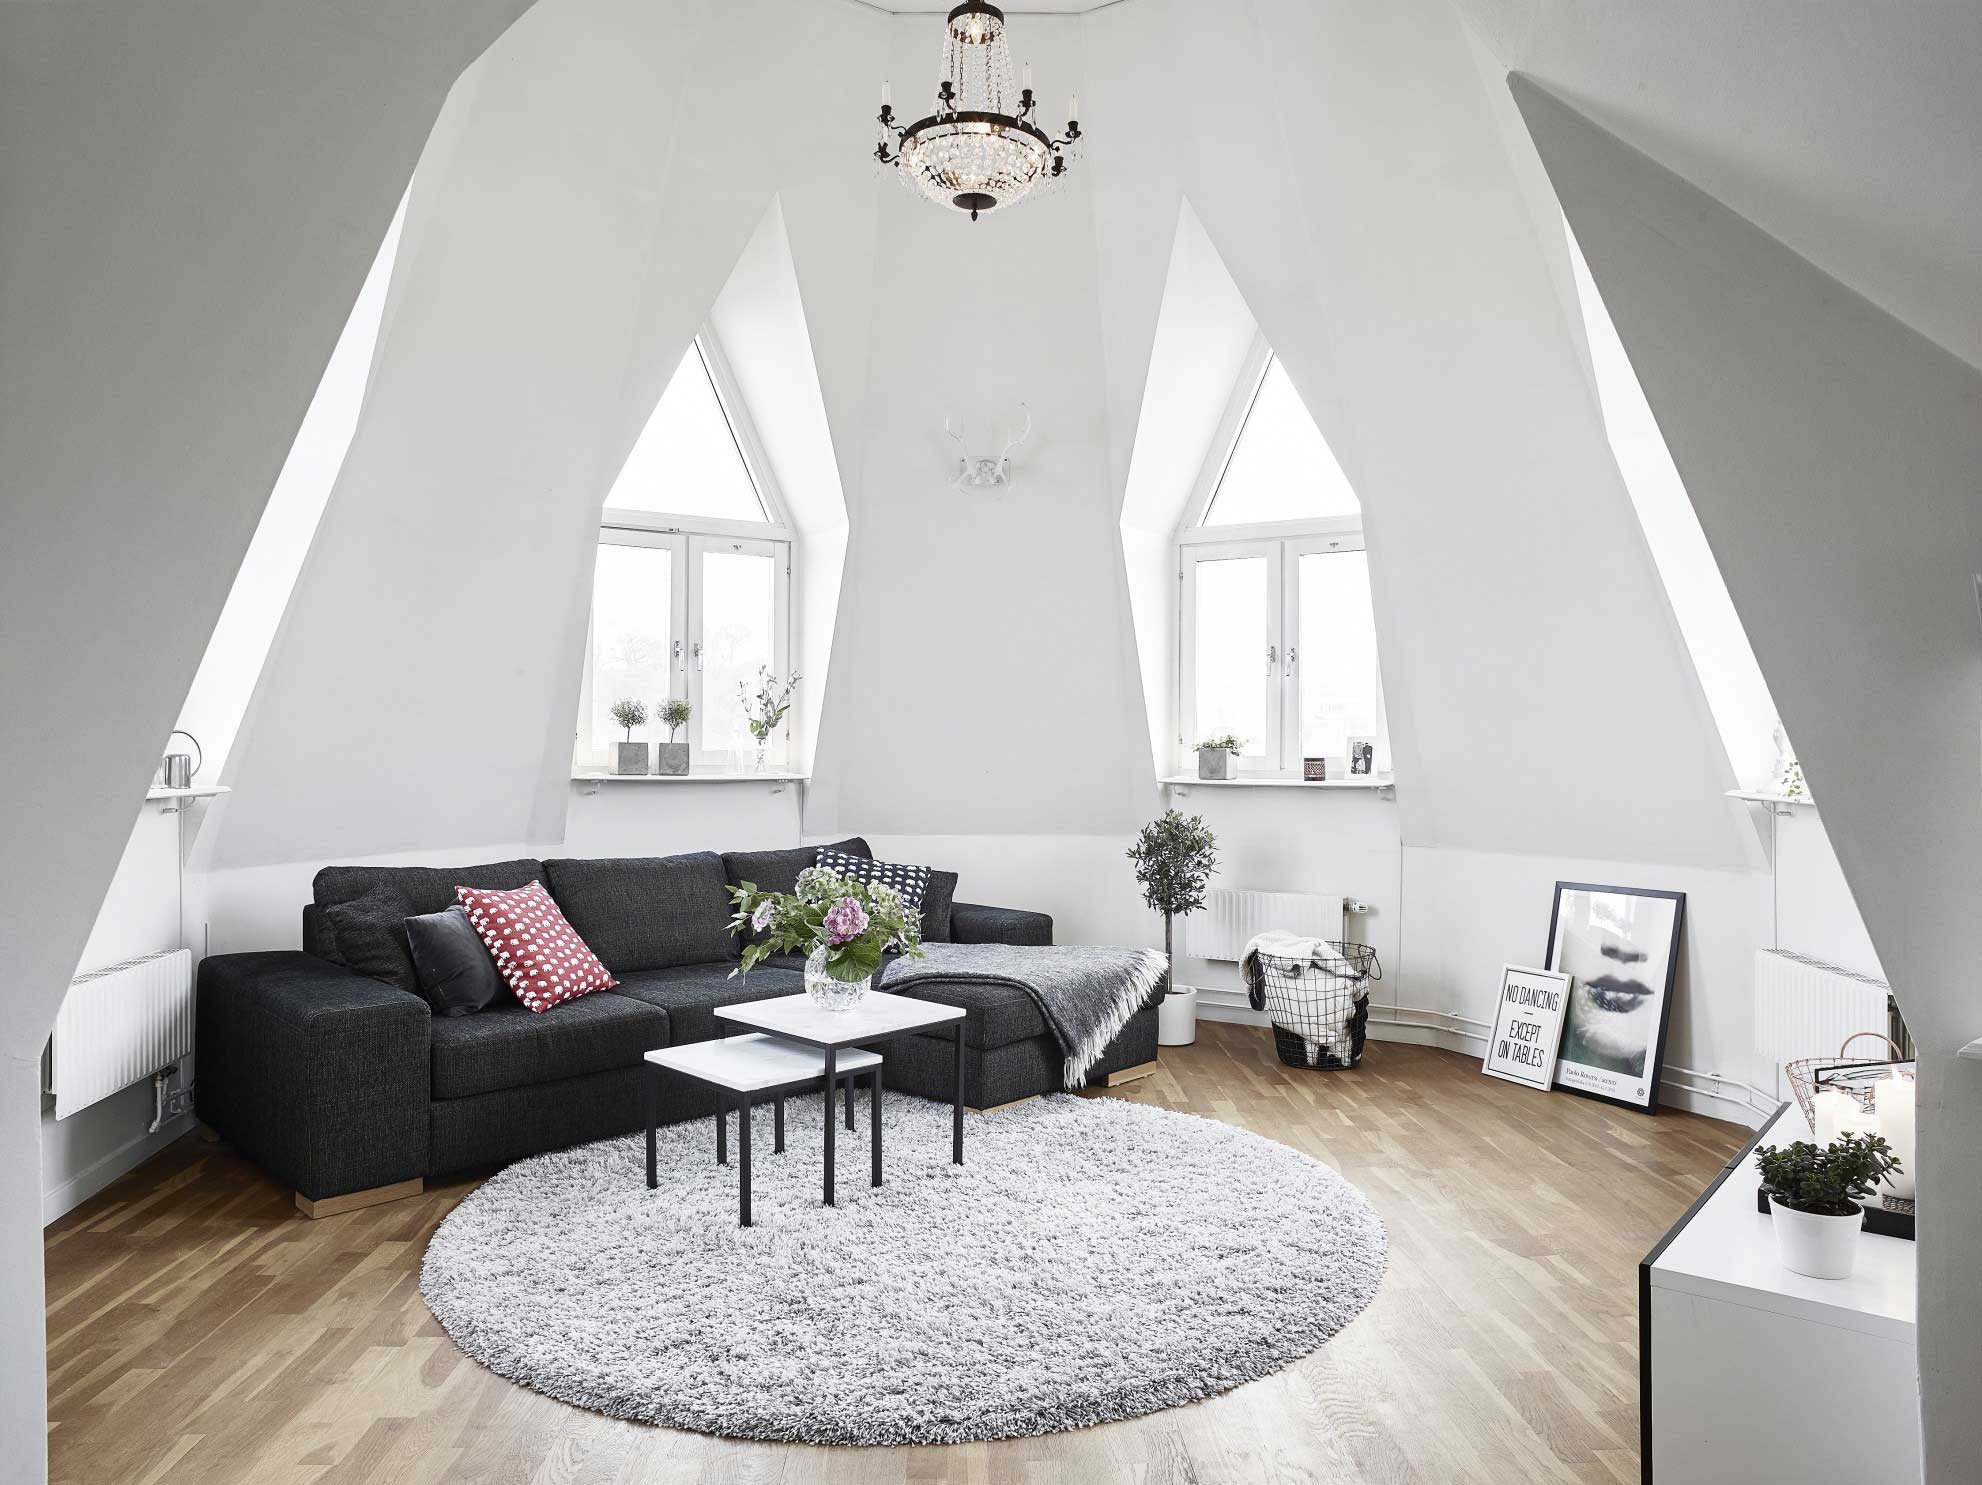 oddly shaped attic living room. Black Bedroom Furniture Sets. Home Design Ideas